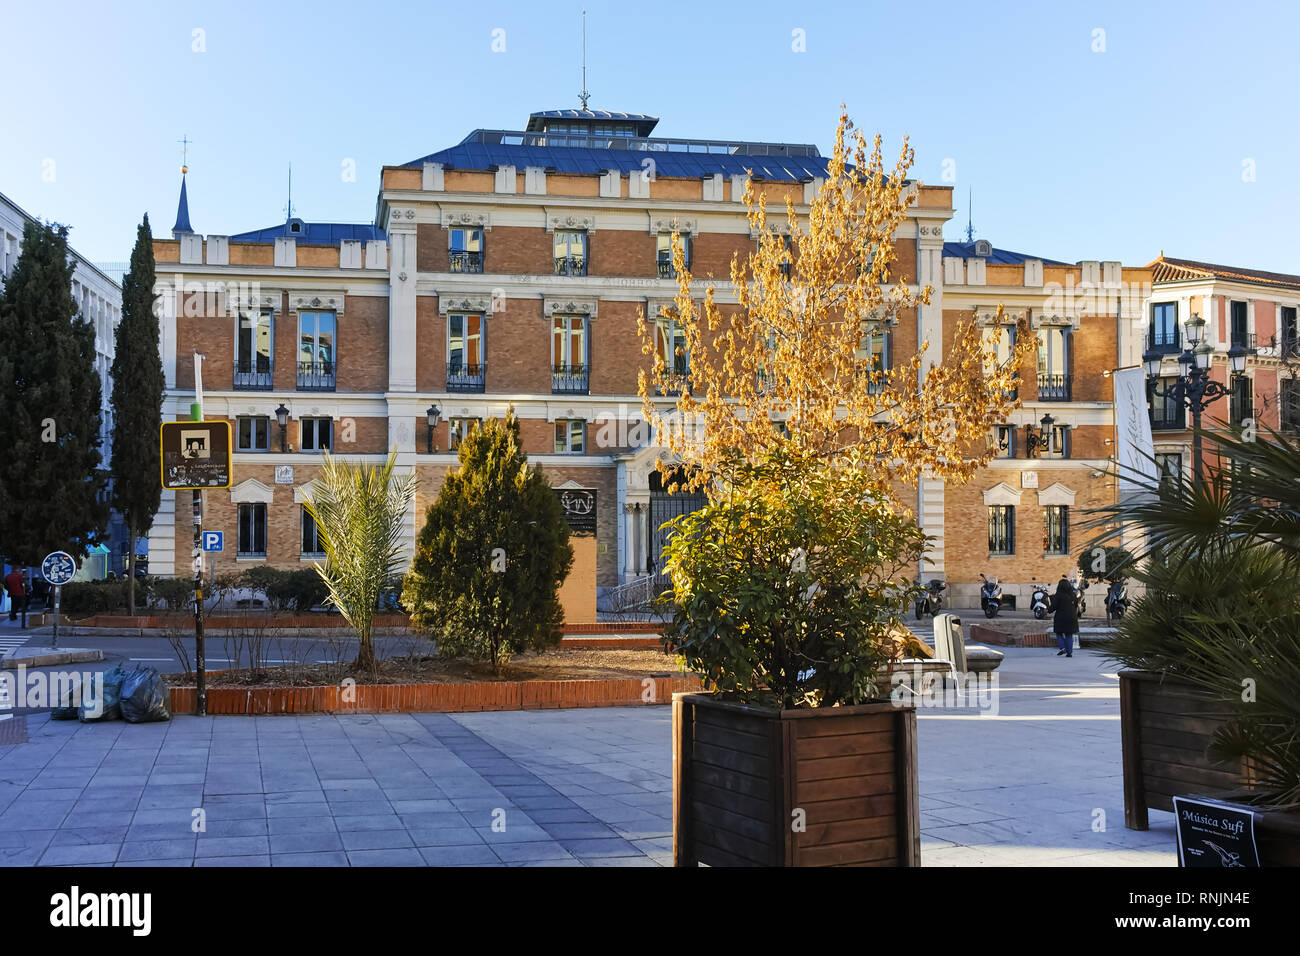 MADRID, SPAIN - JANUARY 22, 2018:  Amazing morning view of Plaza de San Martin in Madrid, Spain - Stock Image